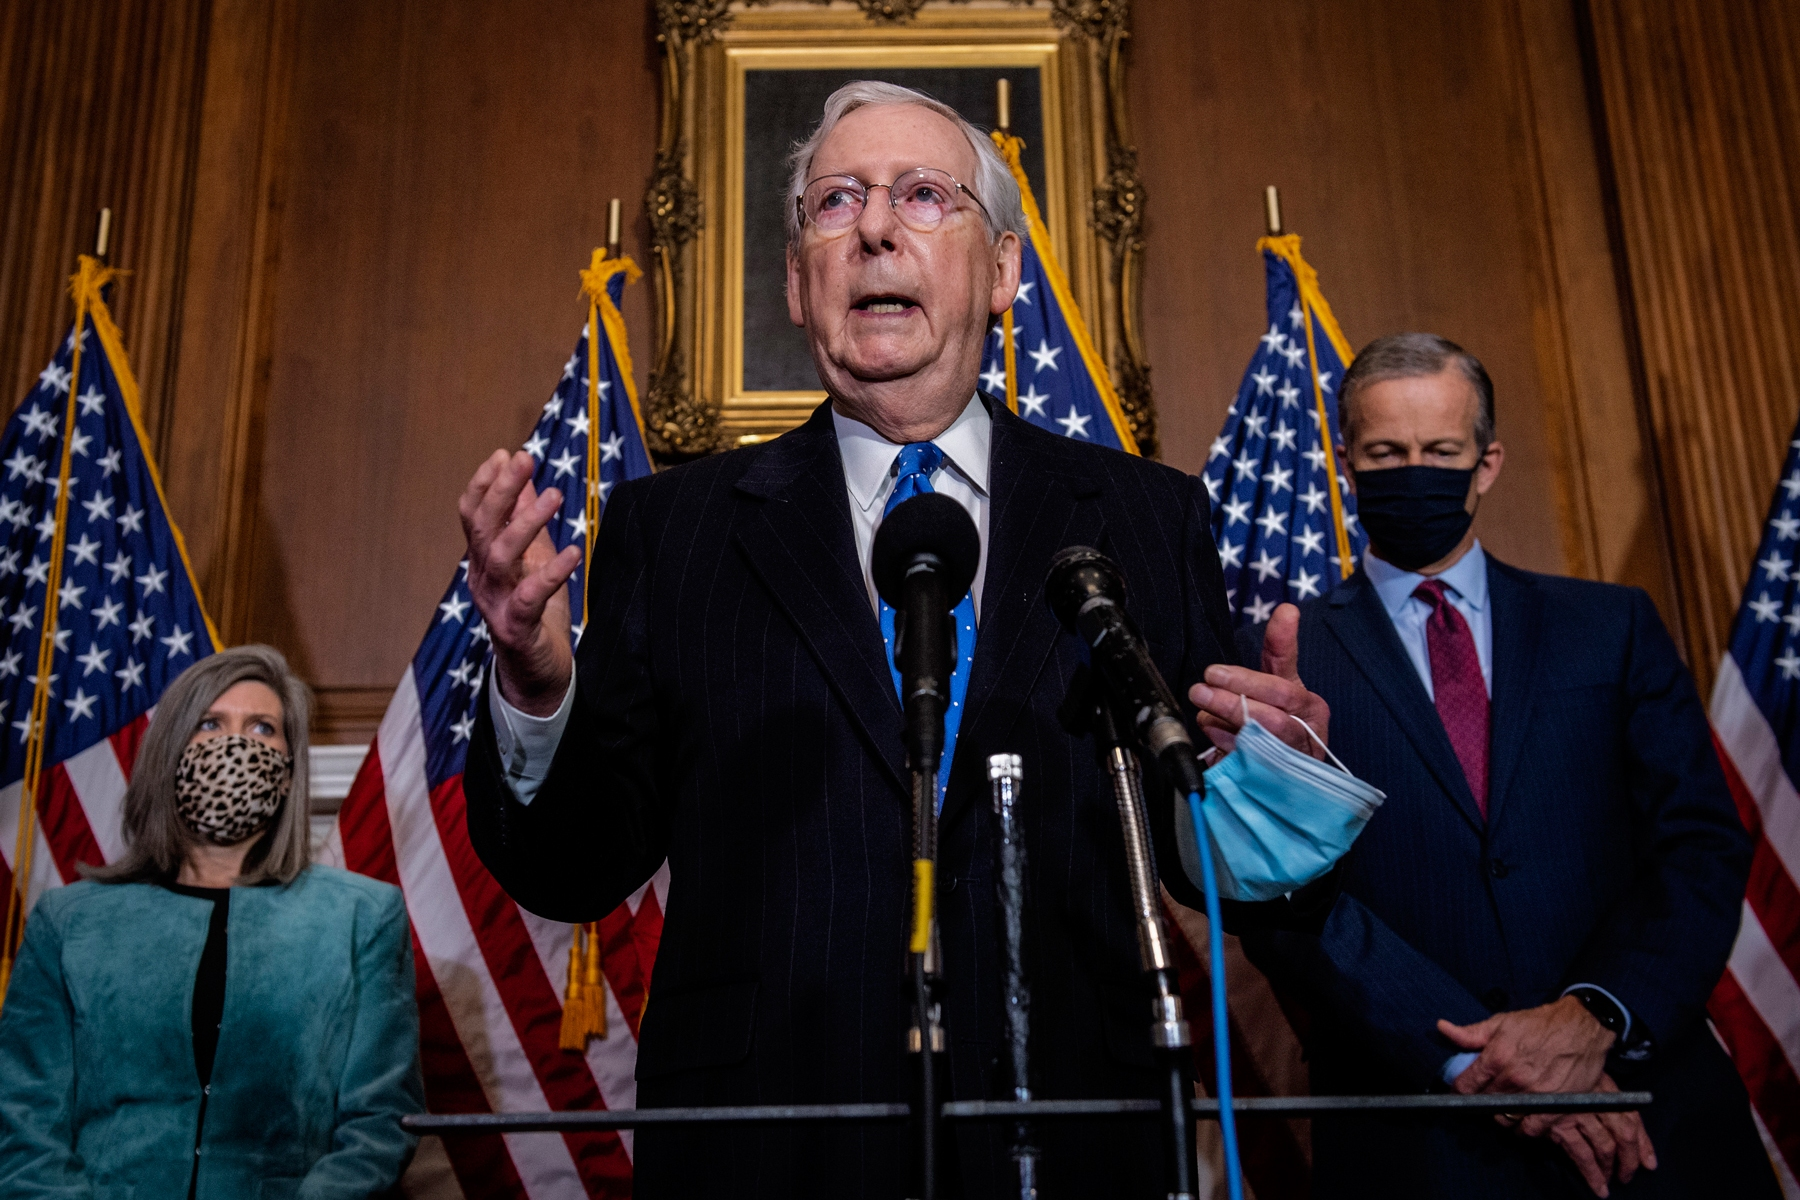 Senate Majority Leader Mitch McMcConnell of Ky., speaks to reporters on Capitol Hill in Washington, Tuesday, Dec. 1, 2020. (Bill O'Leary/Pool via AP)